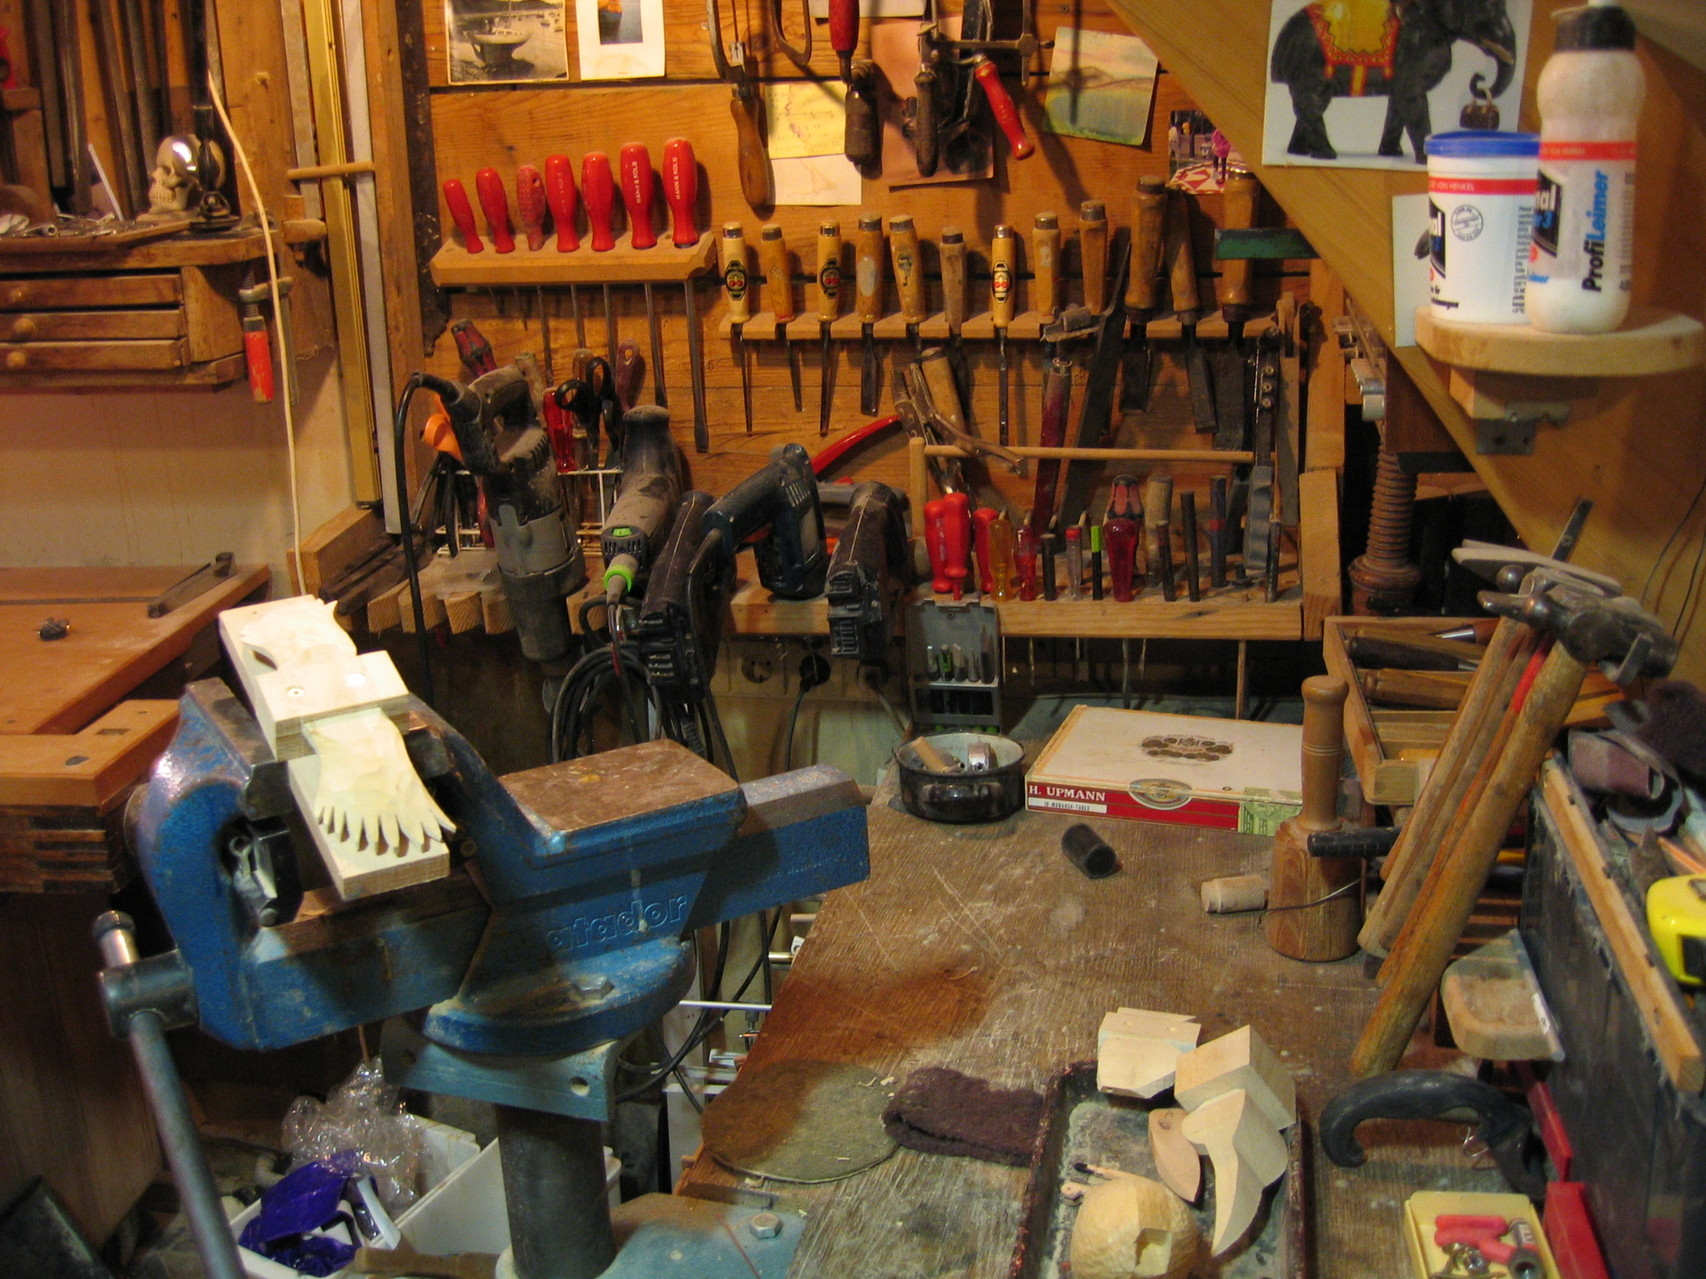 The Pendel workshop